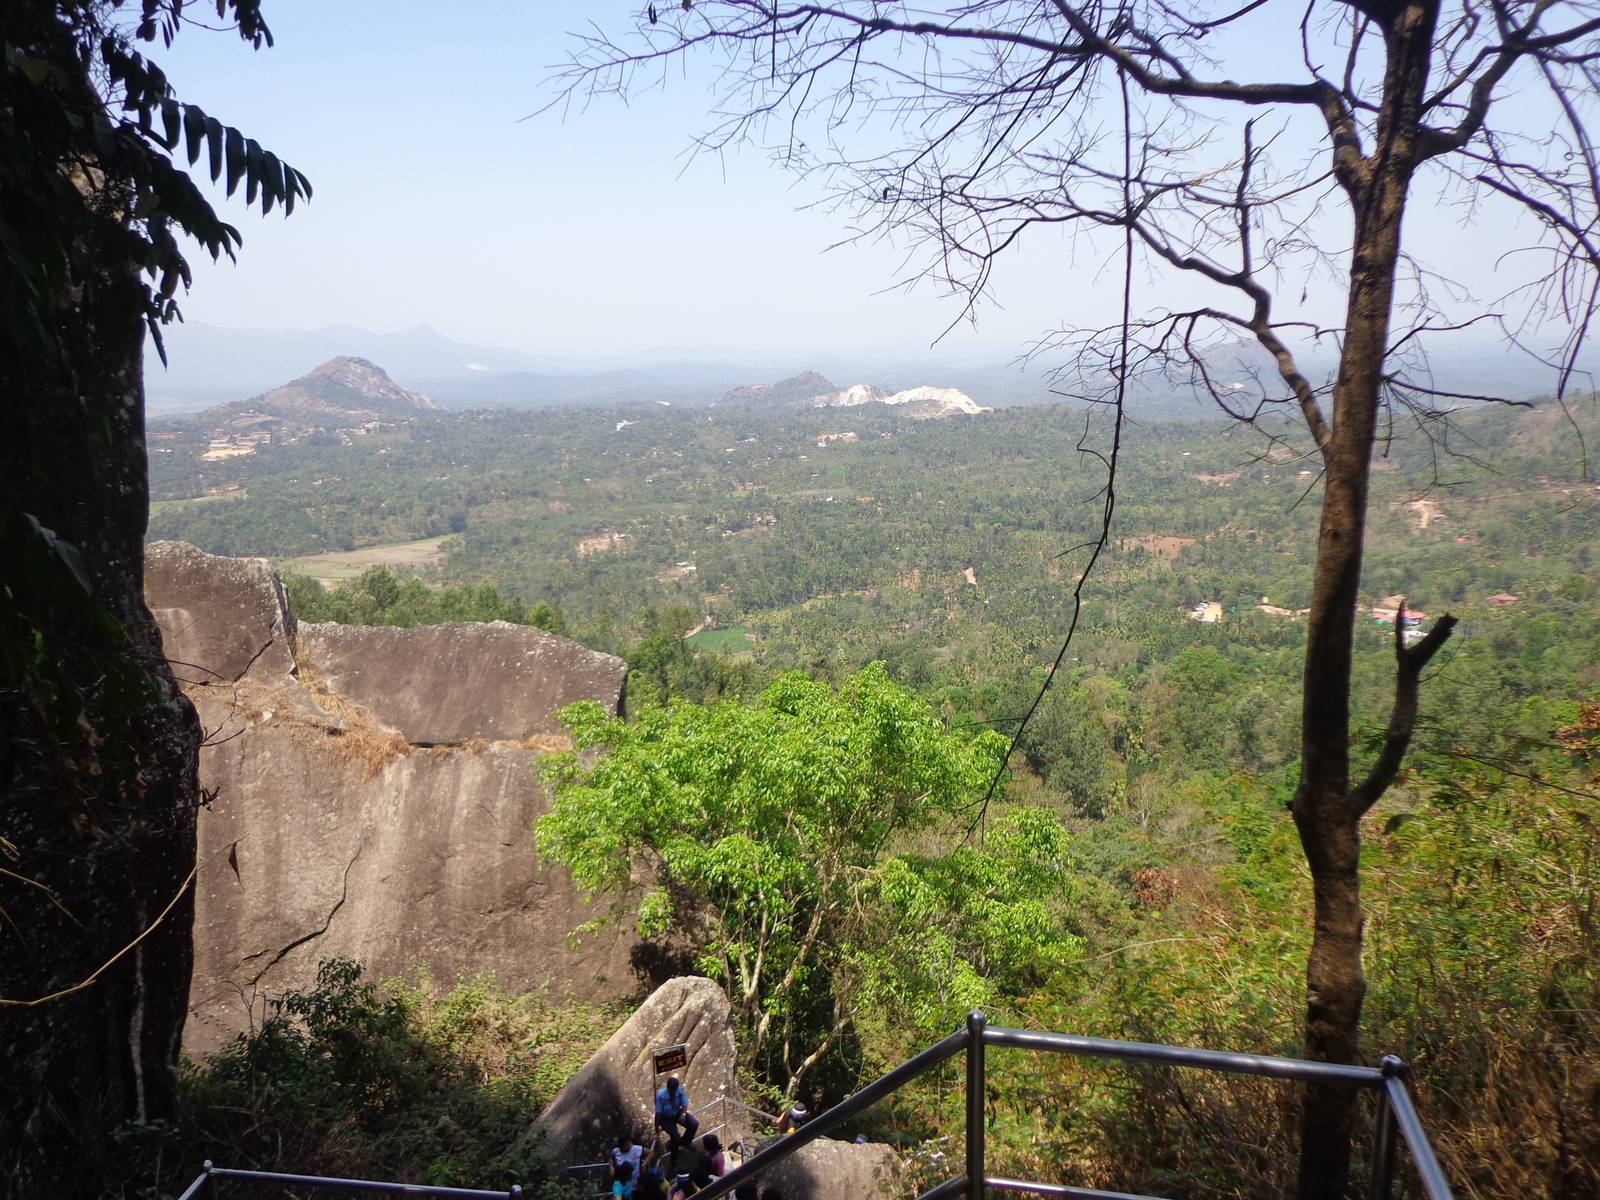 The view of the settlements from the entrance of upper Edakkal caves.